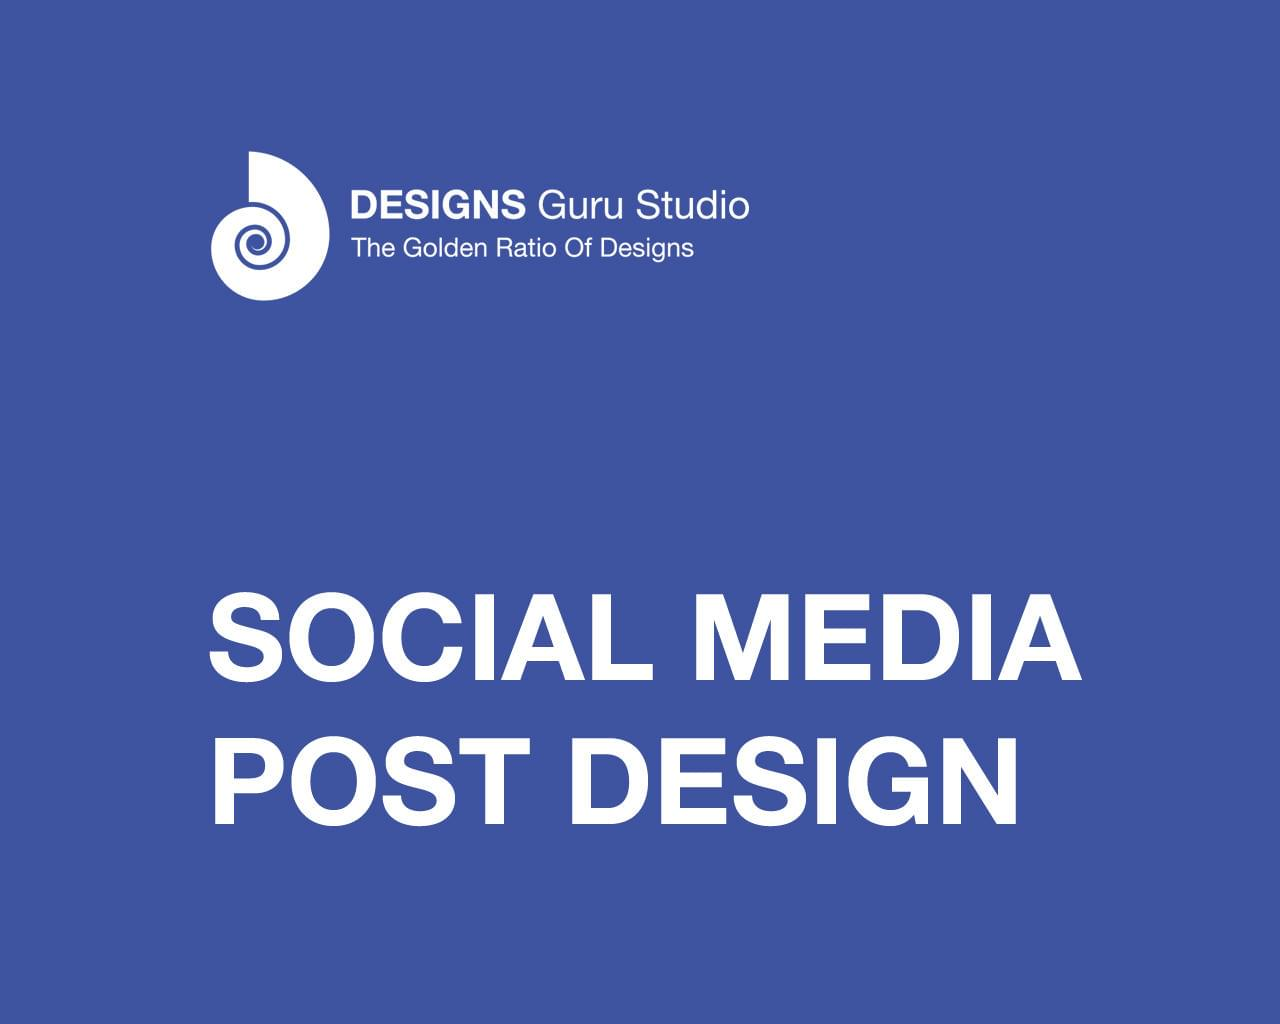 Social Media Post Design by designsgurustudio - 116987